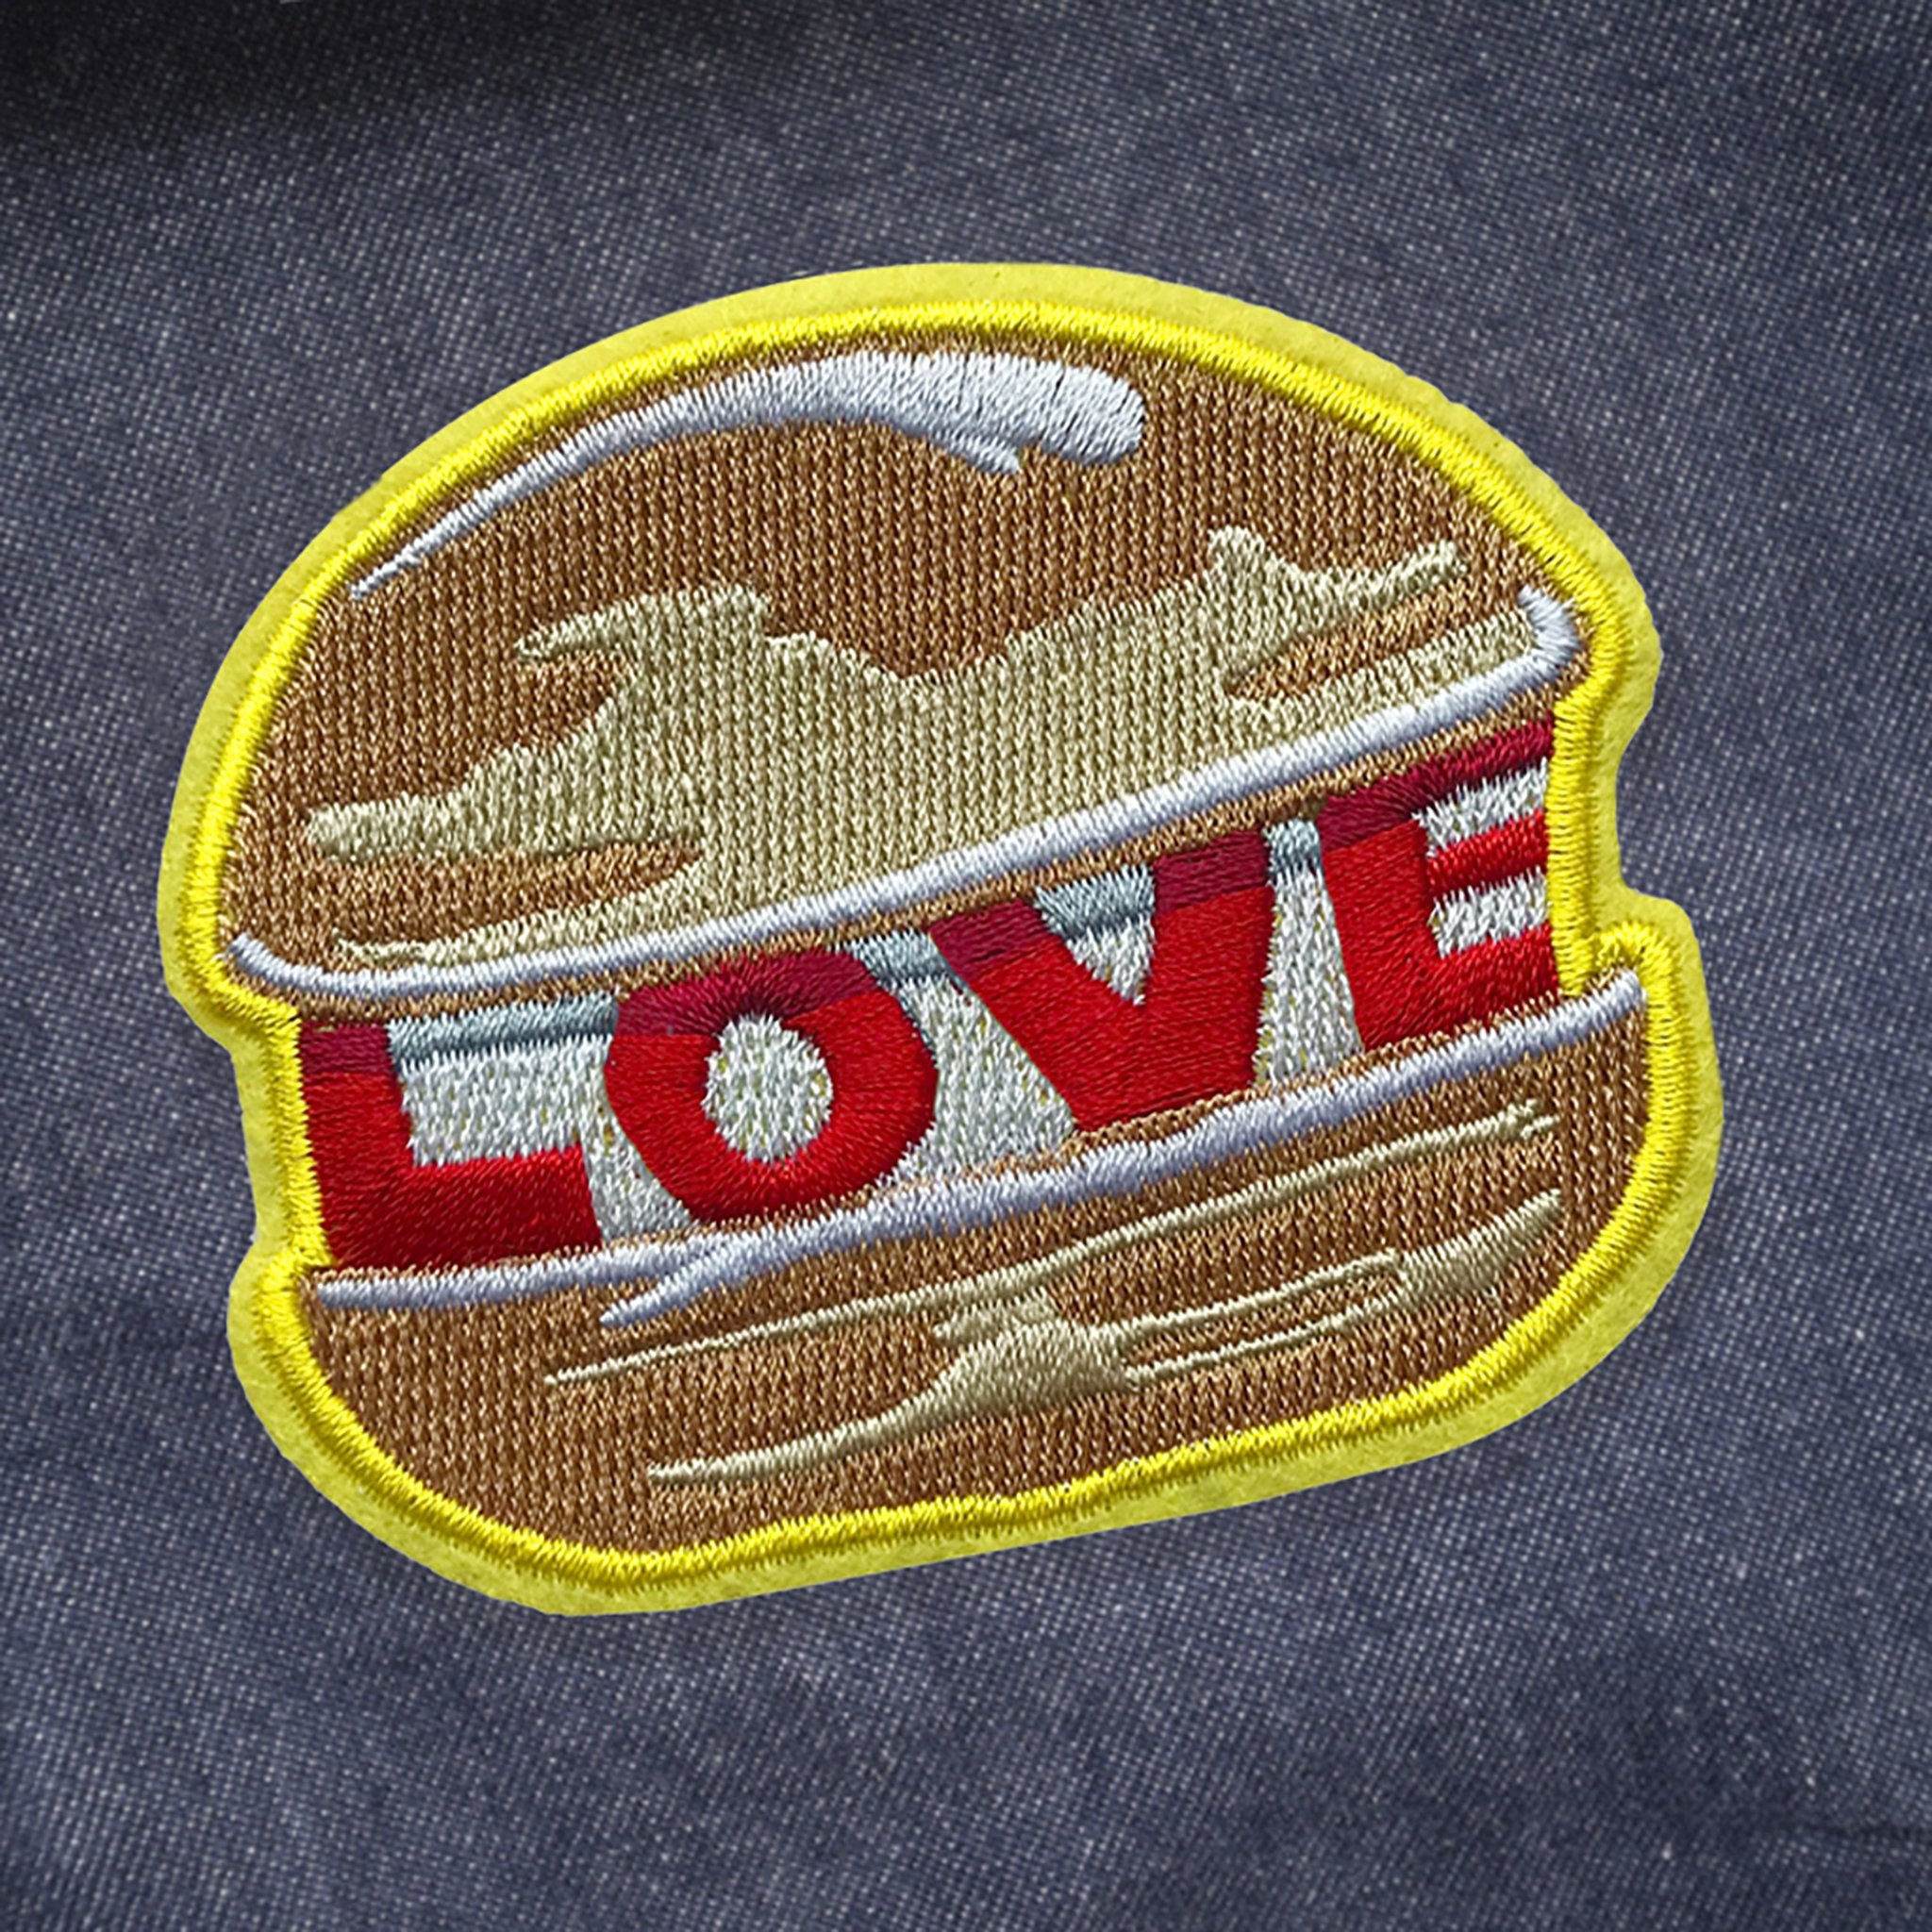 LOVE BURGER PATCH - Dandy Star